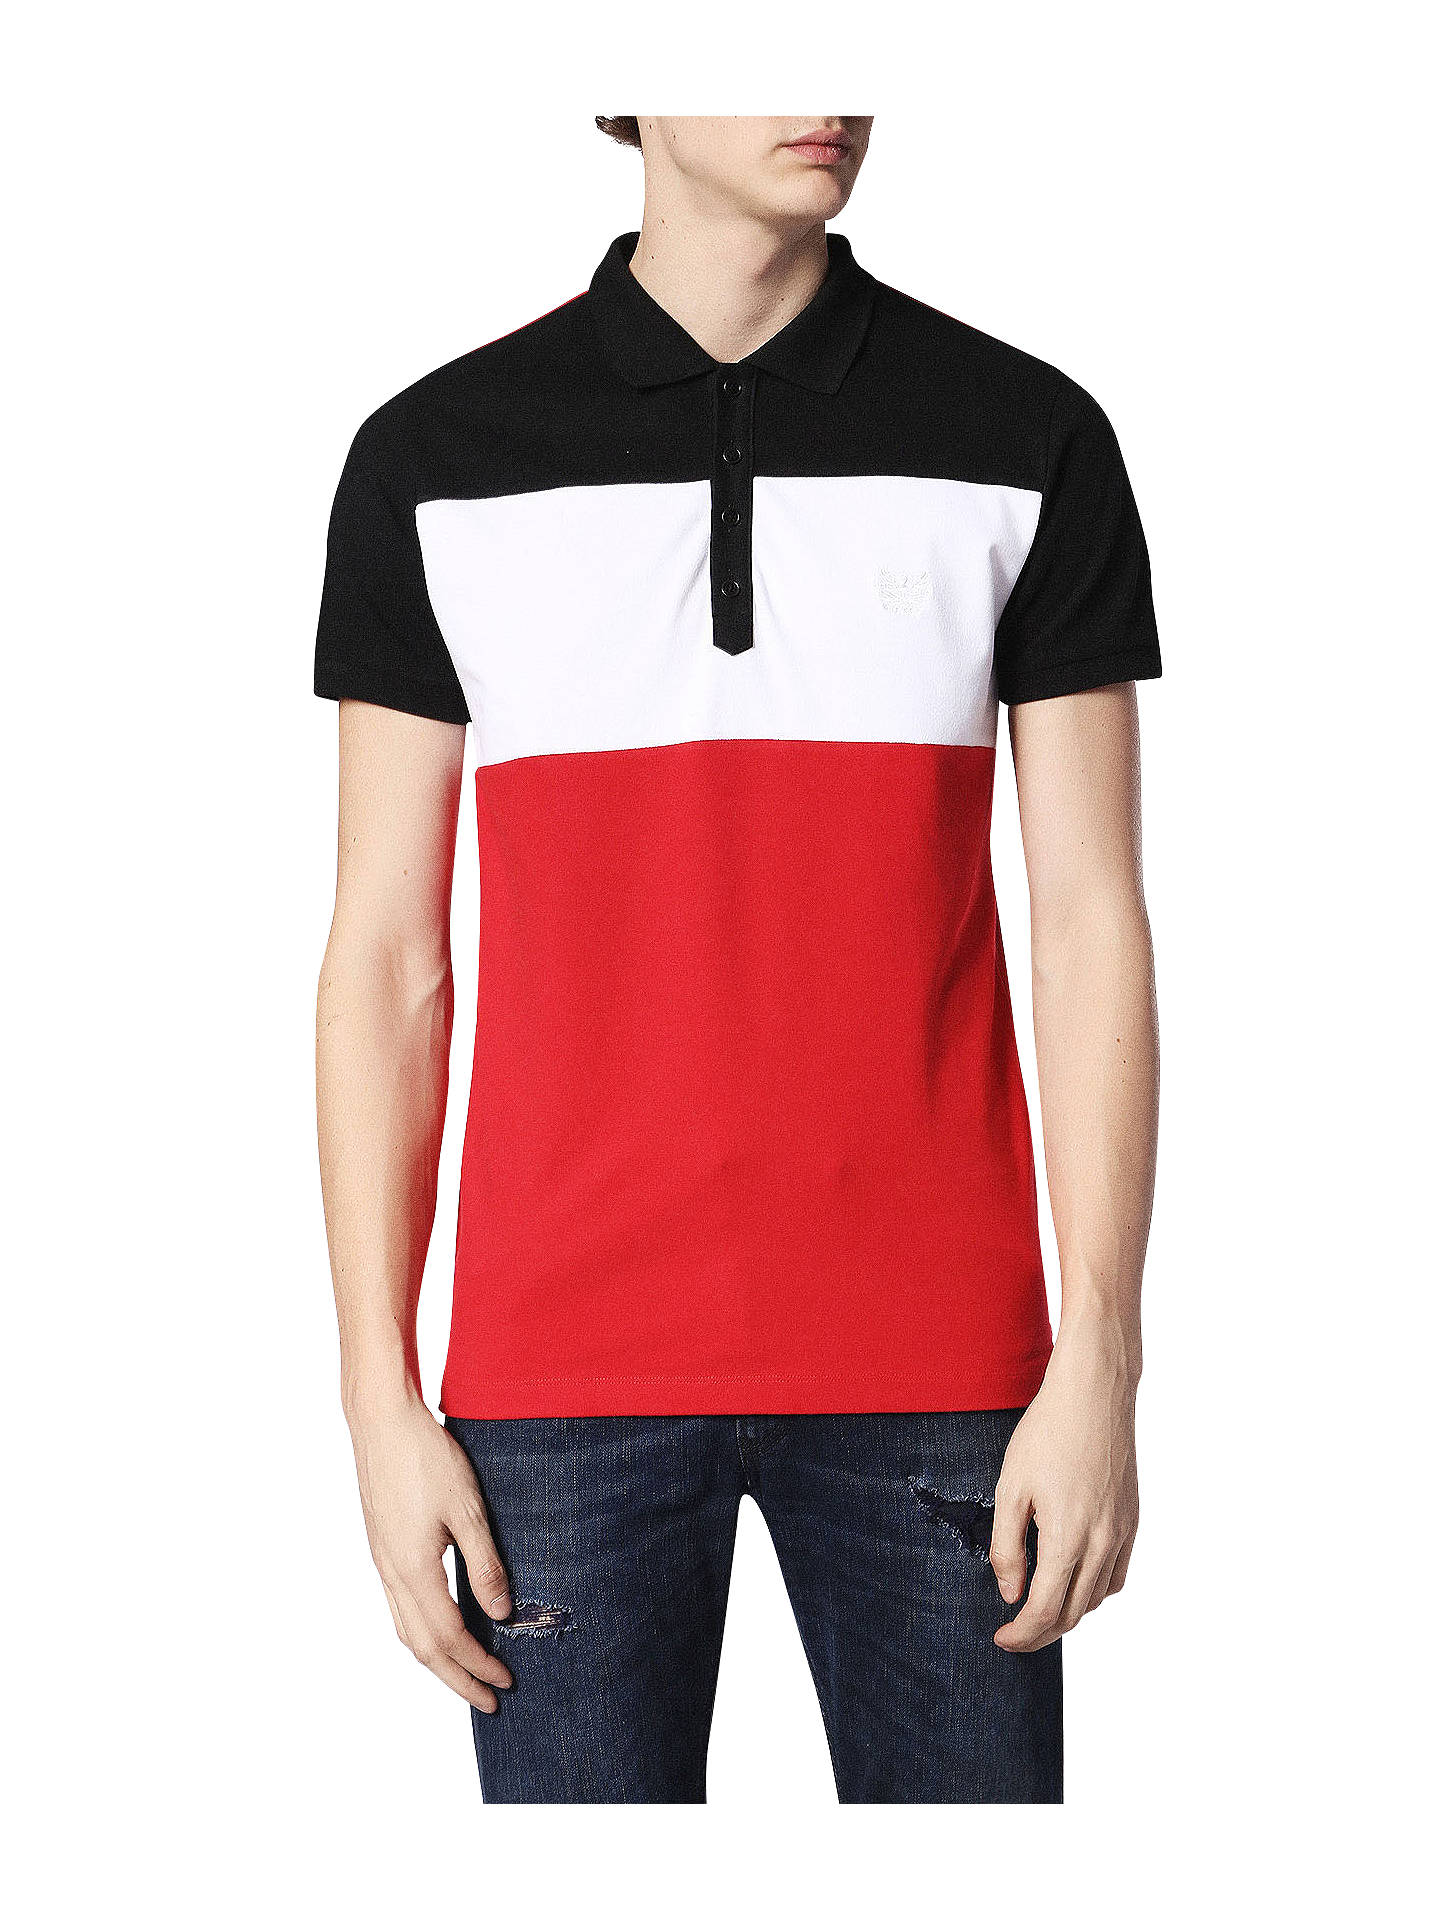 9eac44c5 Diesel T-Day Polo Shirt, Tango Red/White/Blue at John Lewis & Partners